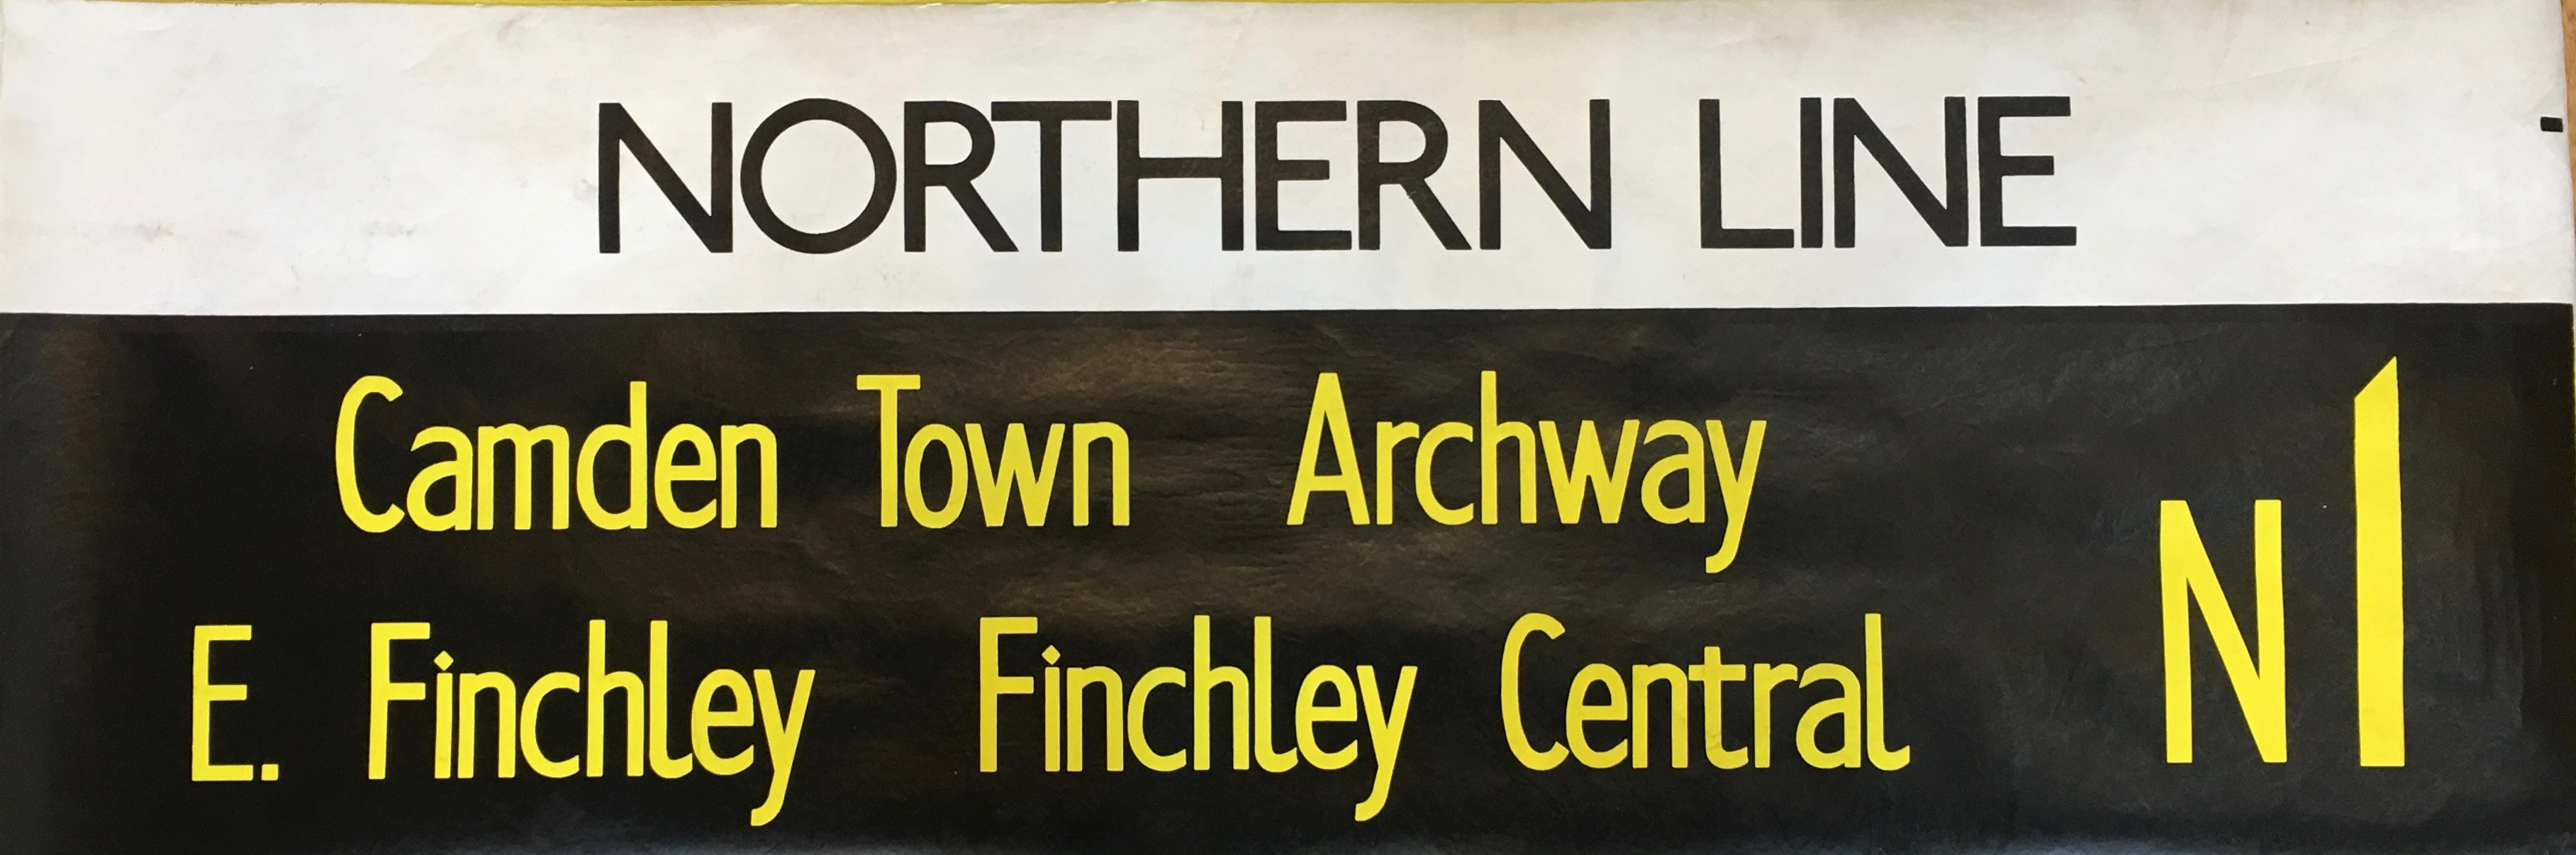 Northern Line, Camden Town, Archway, Finchley